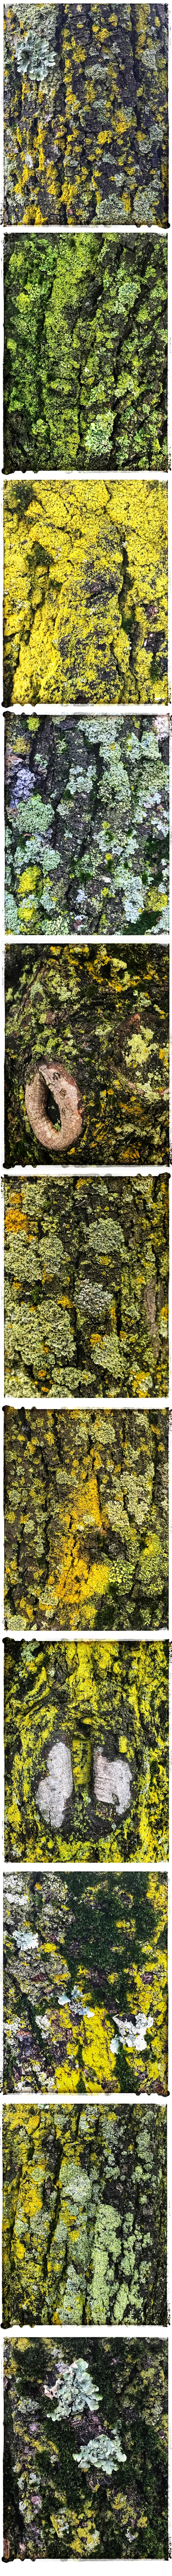 Lichen Moss Collage